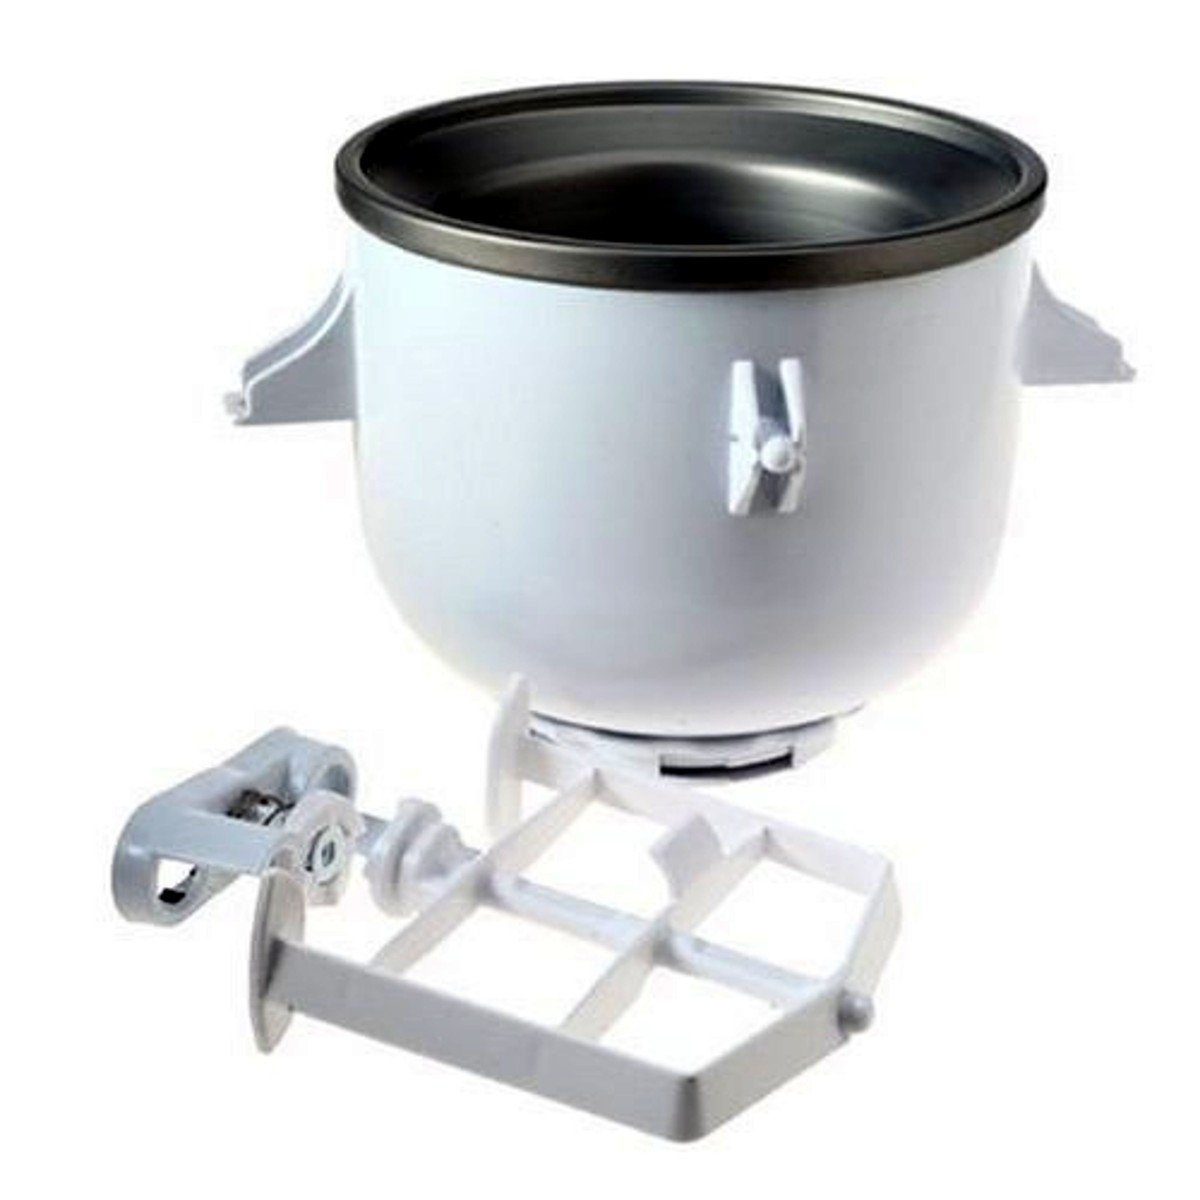 kitchen aid mixer reviews space saving table kitchenaid professional 600 series stand review